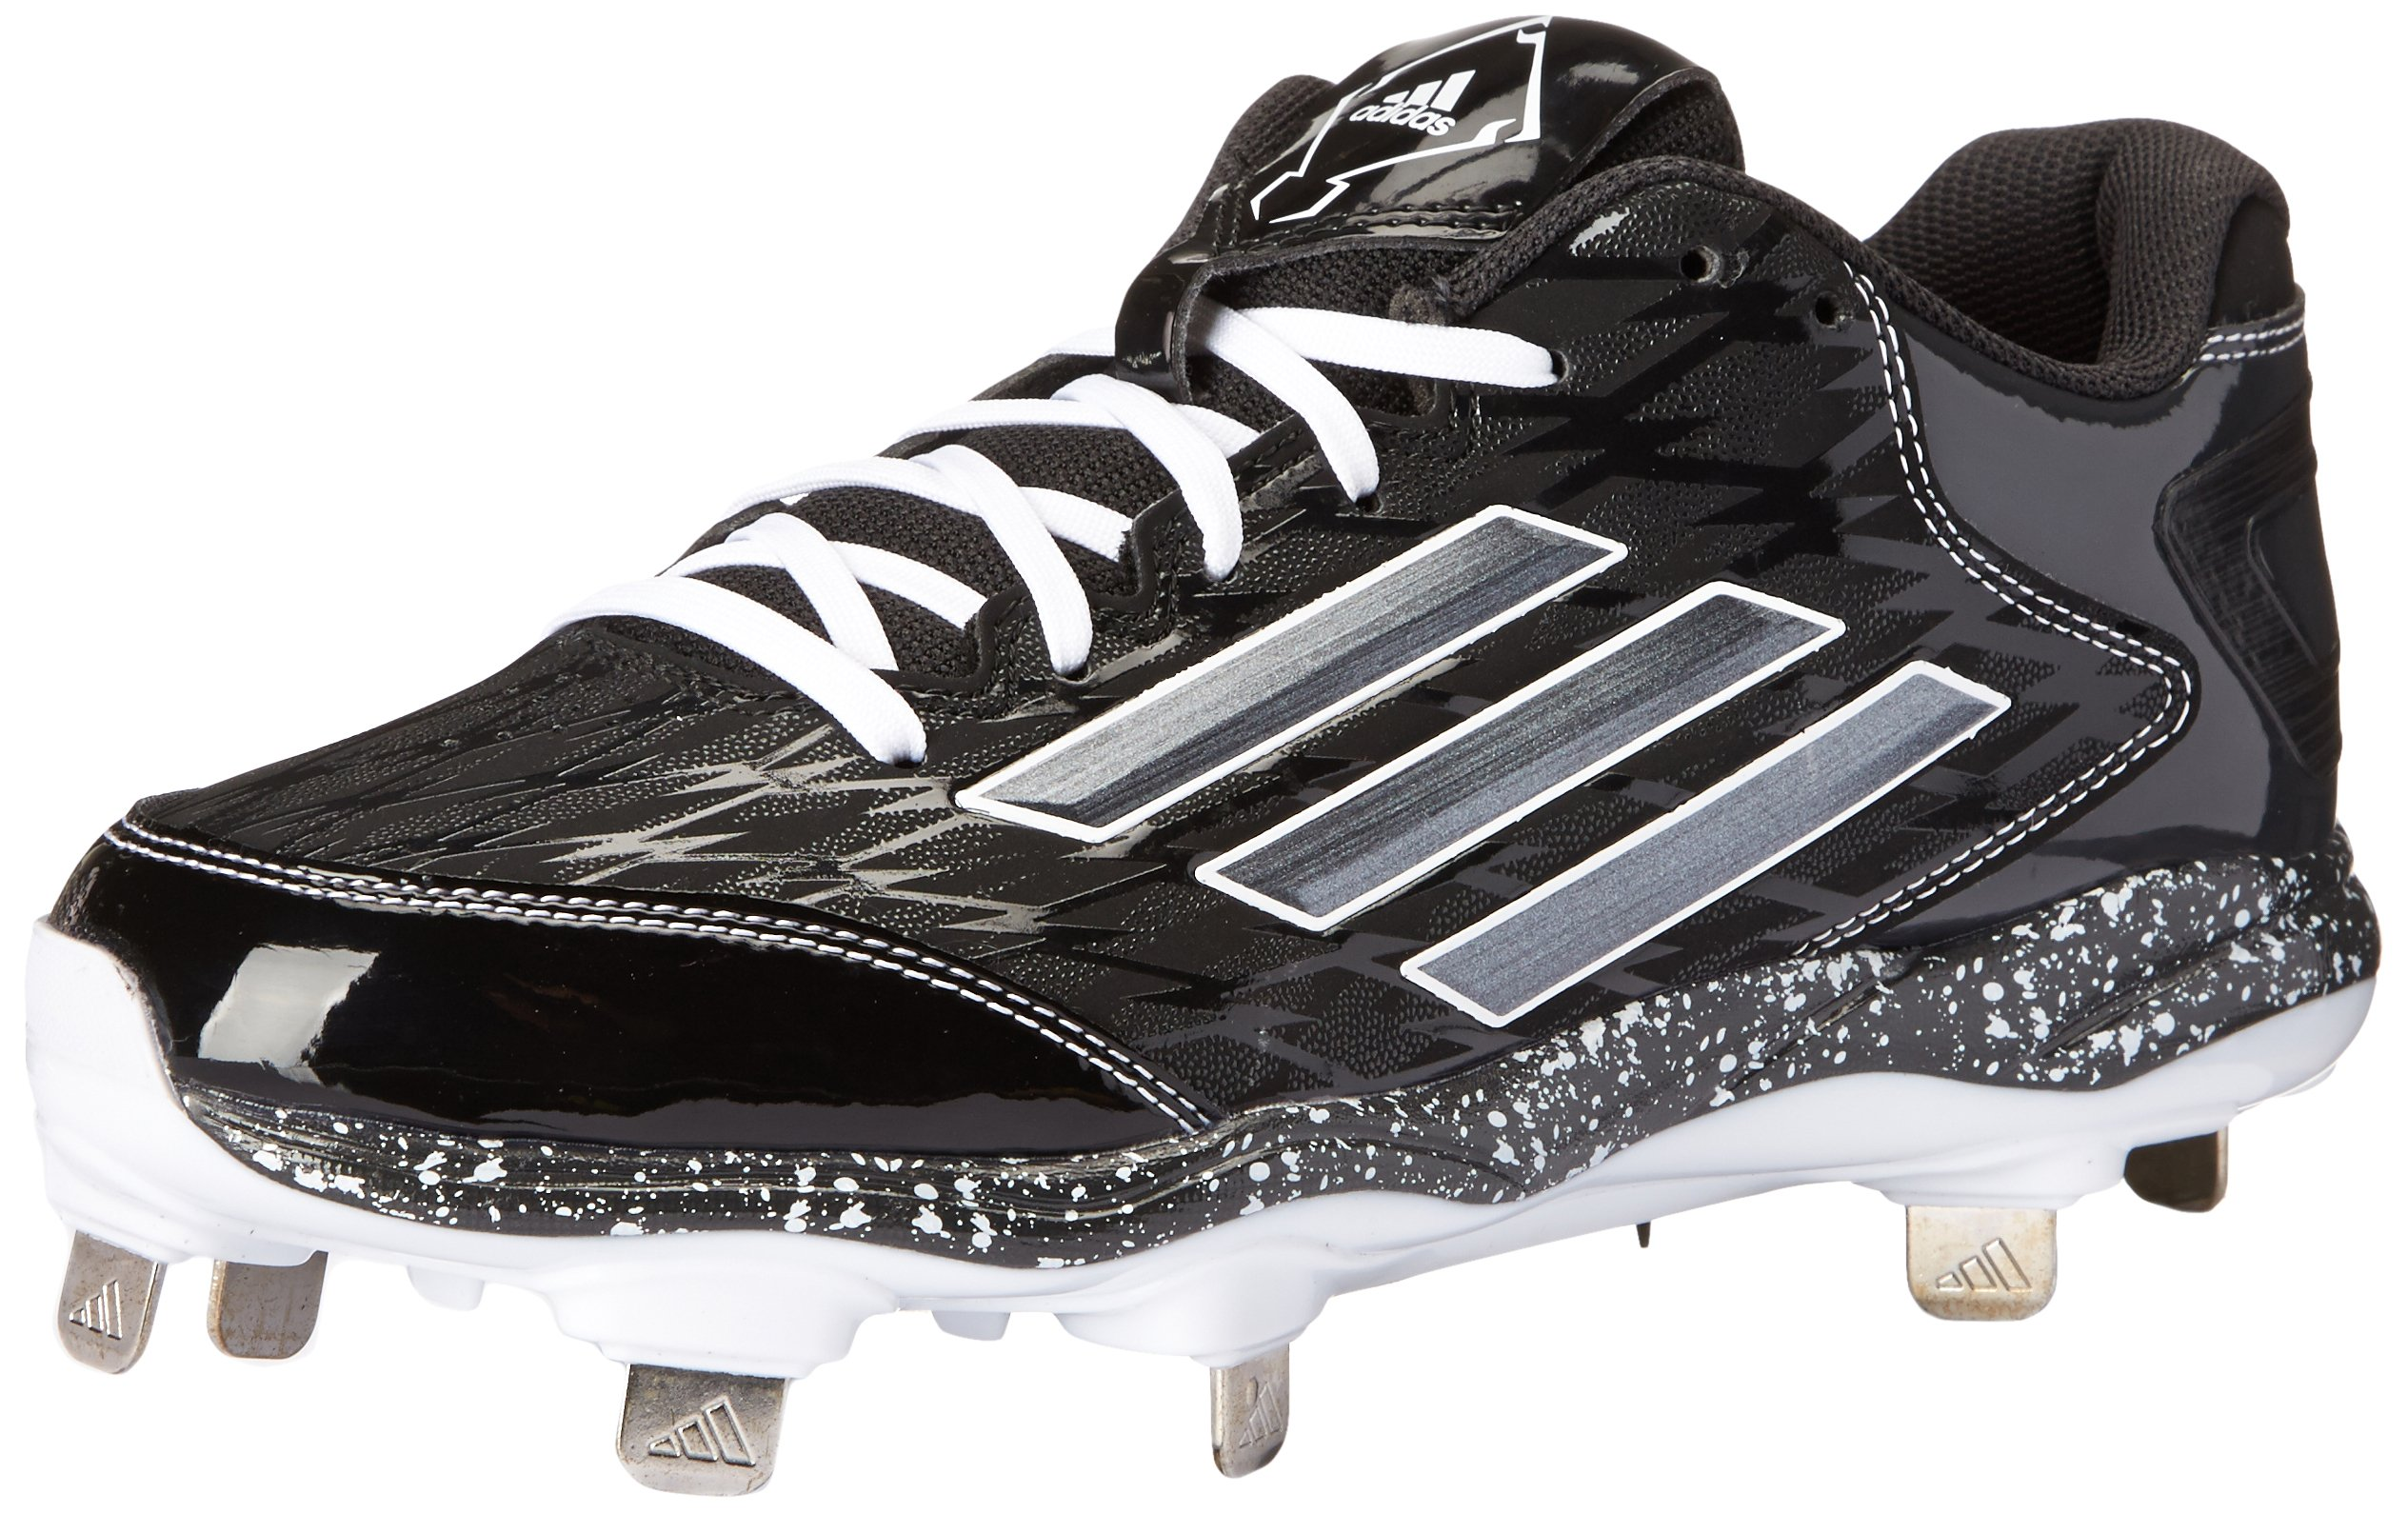 adidas Performance Women's PowerAlley 2 W Softball Cleat, Black/Carbon/White, 7 M US